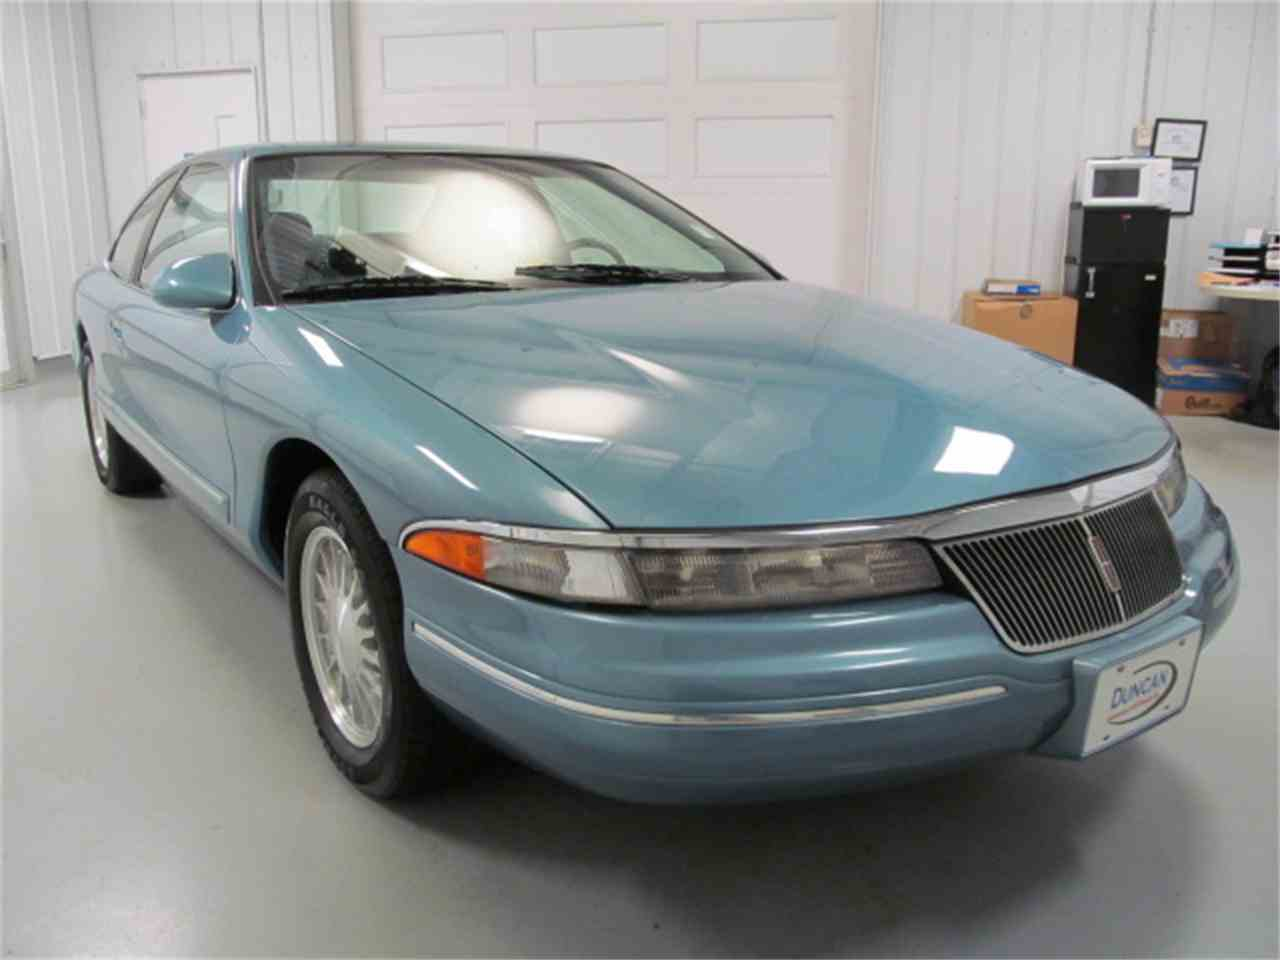 Large Picture of '93 Lincoln Mark VIII located in Virginia - $9,900.00 - JL9Z